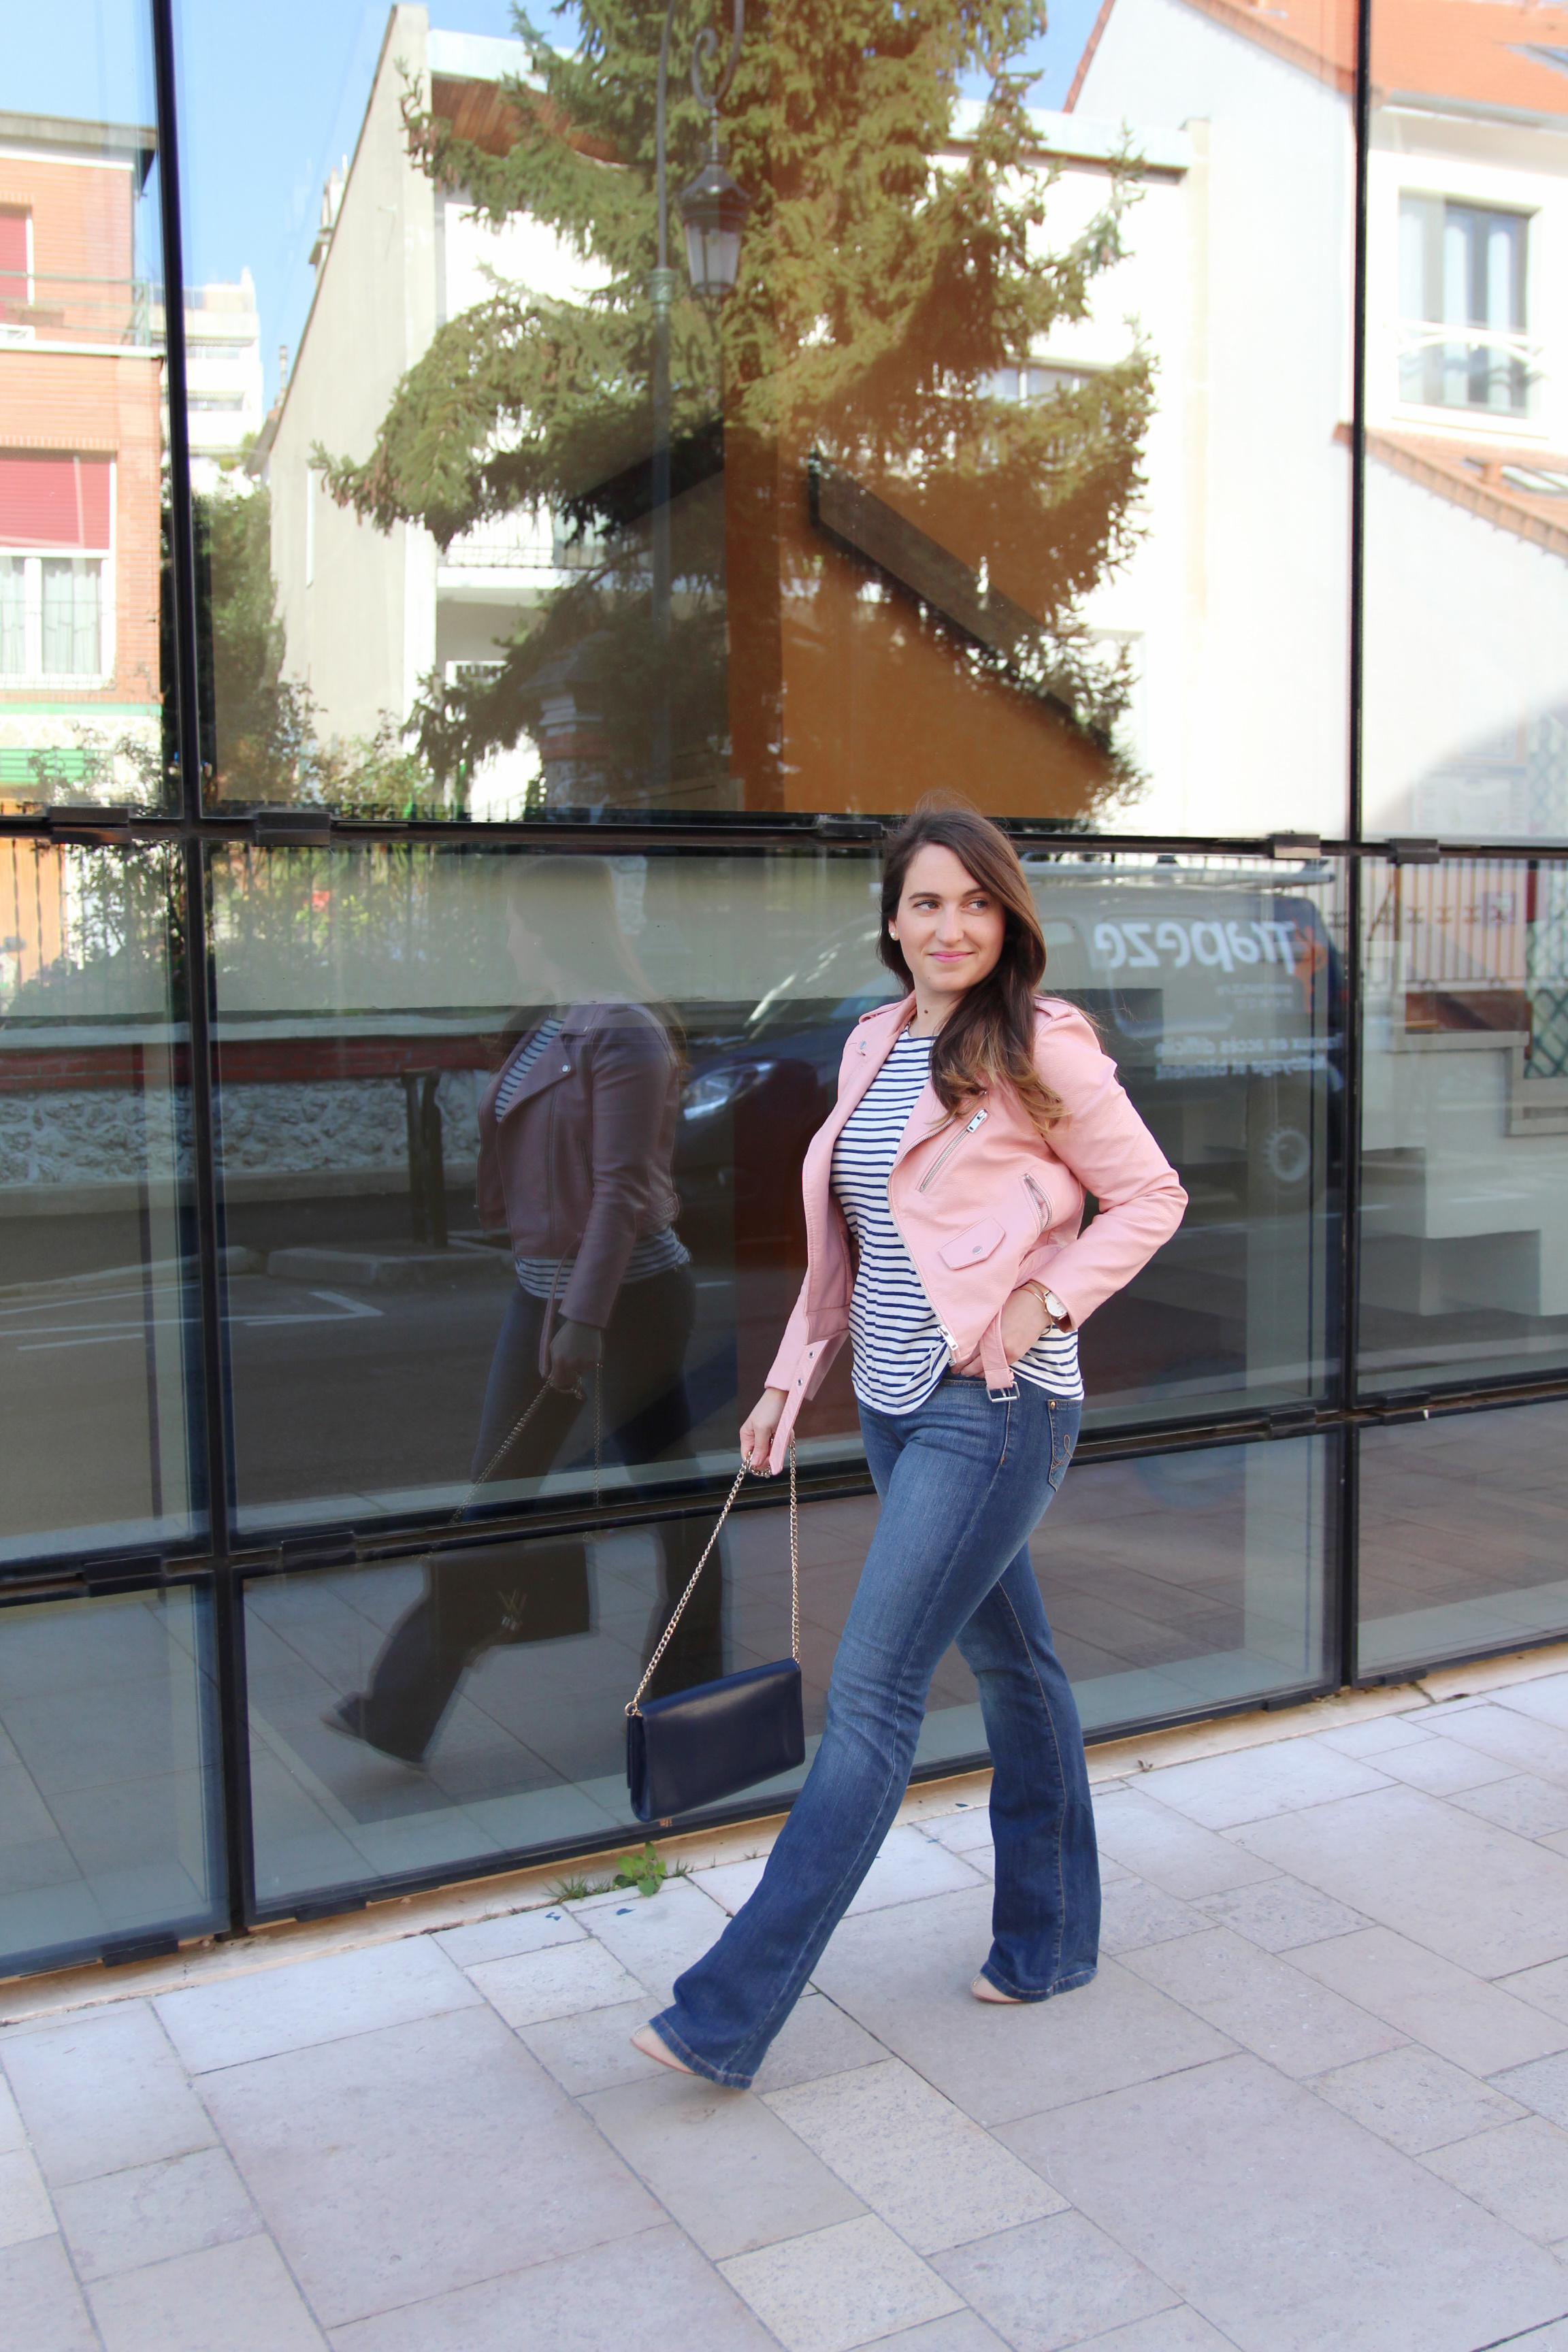 perfecto-rose-zara-marinniere-denim-influencer-fashion-ottd-look-seralynepointcom-paris-IMG_7003